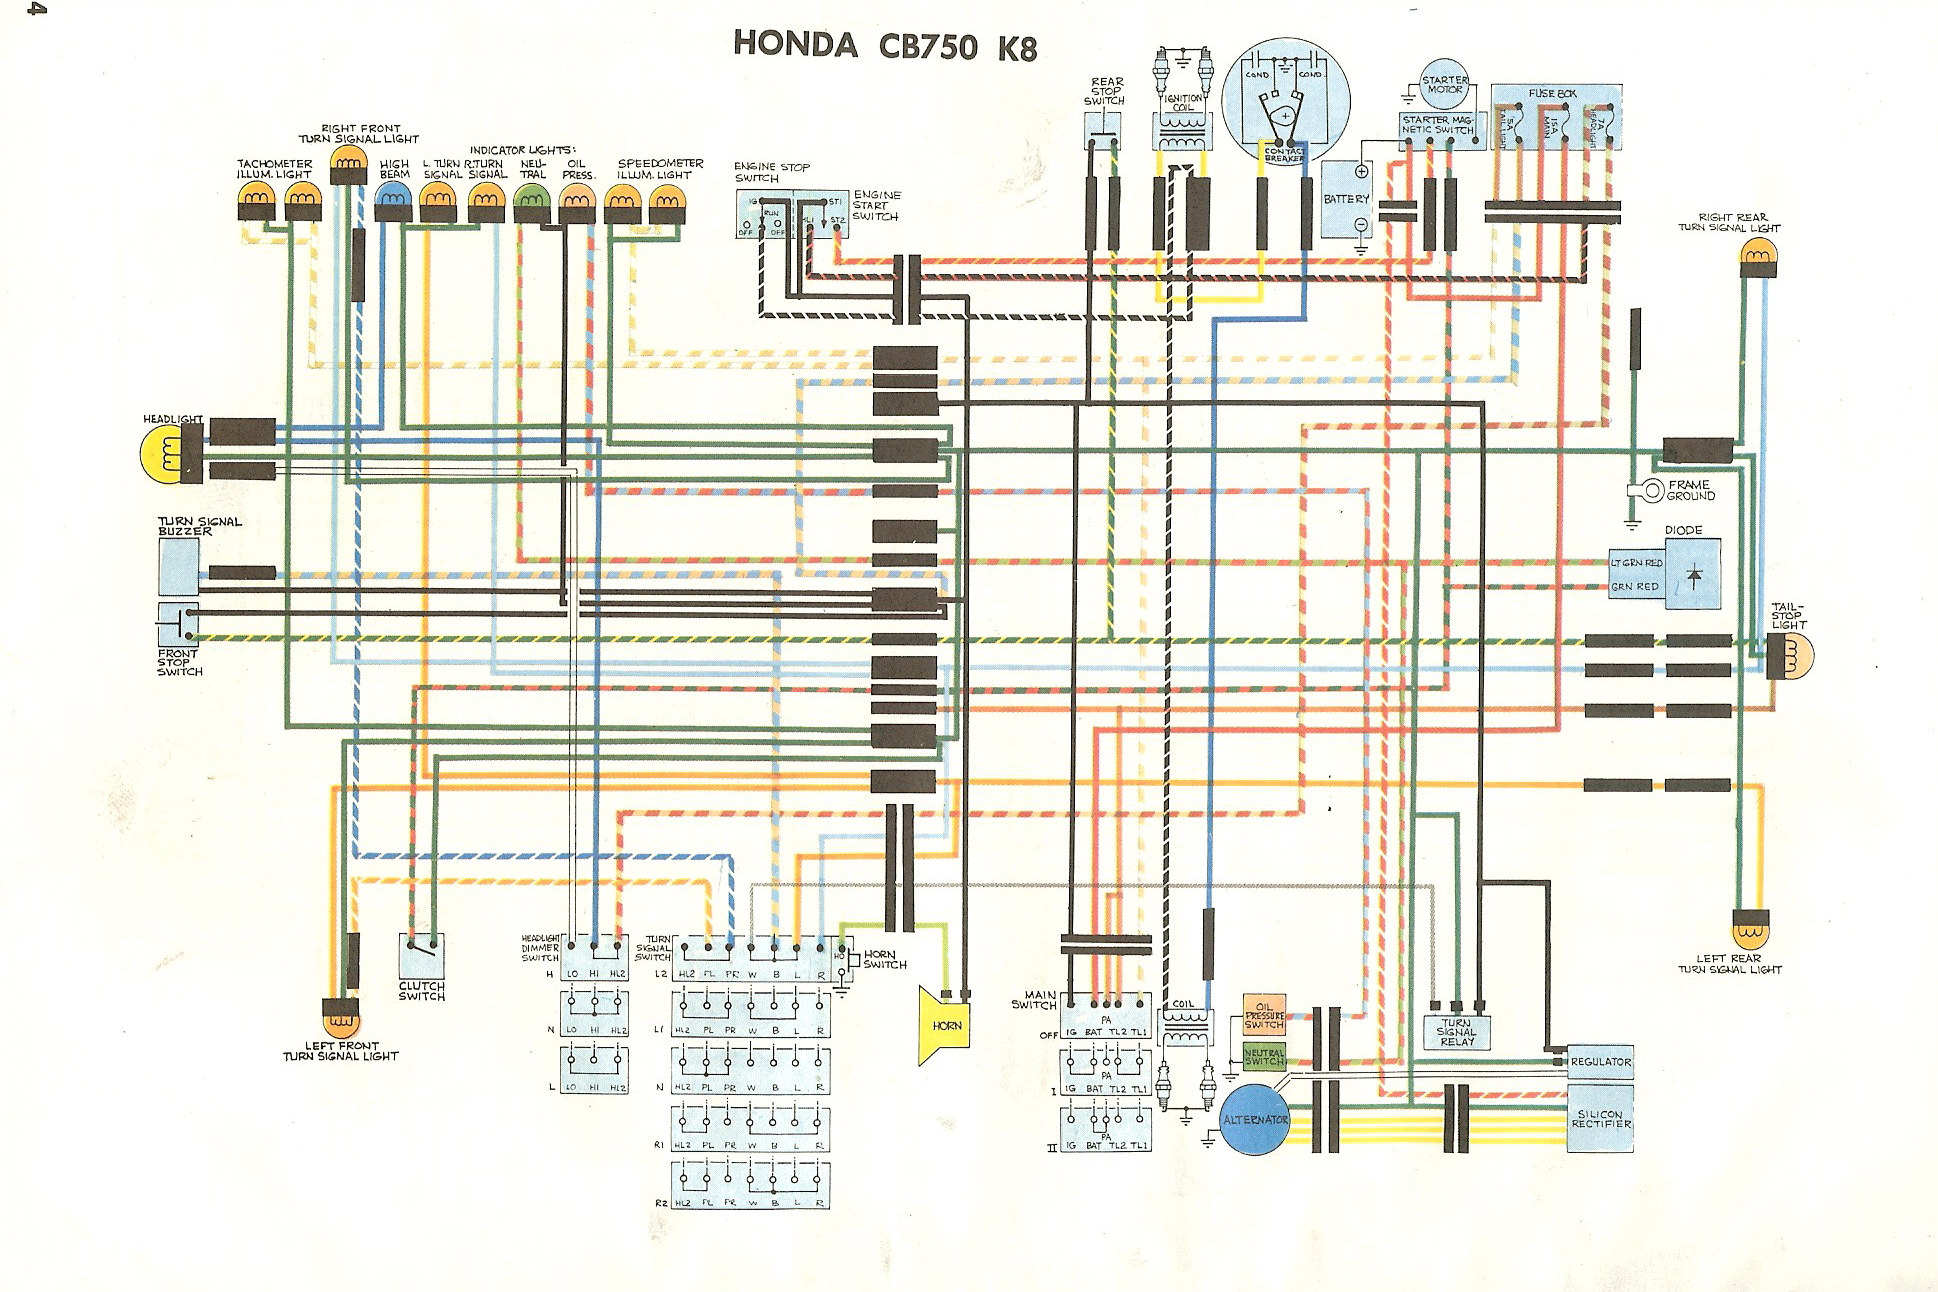 1971 honda ct70 wiring diagram images best wiring library Honda CT90 cb750k ct70 wiring cb750 wiring kit